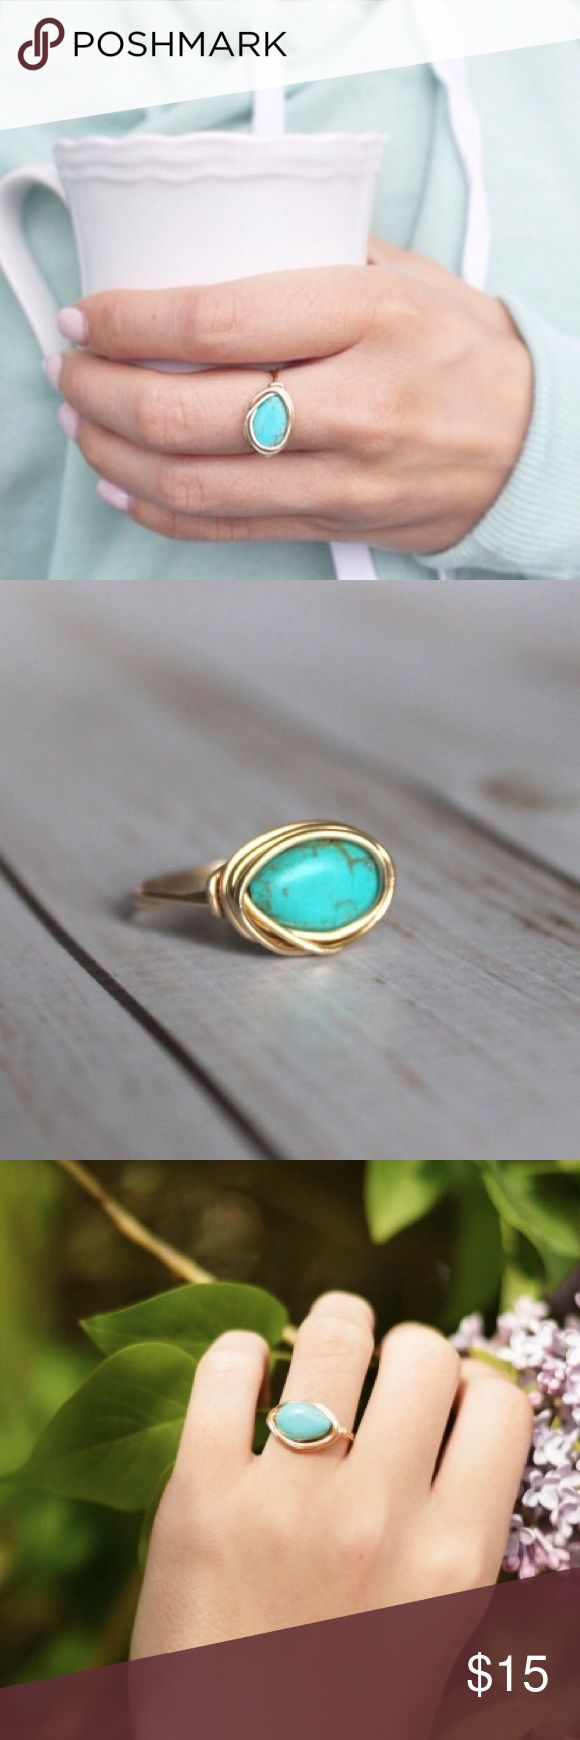 "Turquoise Magnesite Wire Wrapped Ring A turquoise colored magnesite bead and wire wrapped ring. The turquoise colored bead is teardrop shaped and perfectly smooth, with a bit of a ""puffed"" look--which makes for a great contrast to the organic, one-of-a-kind gold wrapping around the stone. The wire wrapping style is certainly meant to be a little imperfect, making each ring unique to its owner. The wire used for this ring is gold plated and tarnish resistant wire, meaning it holds up to"